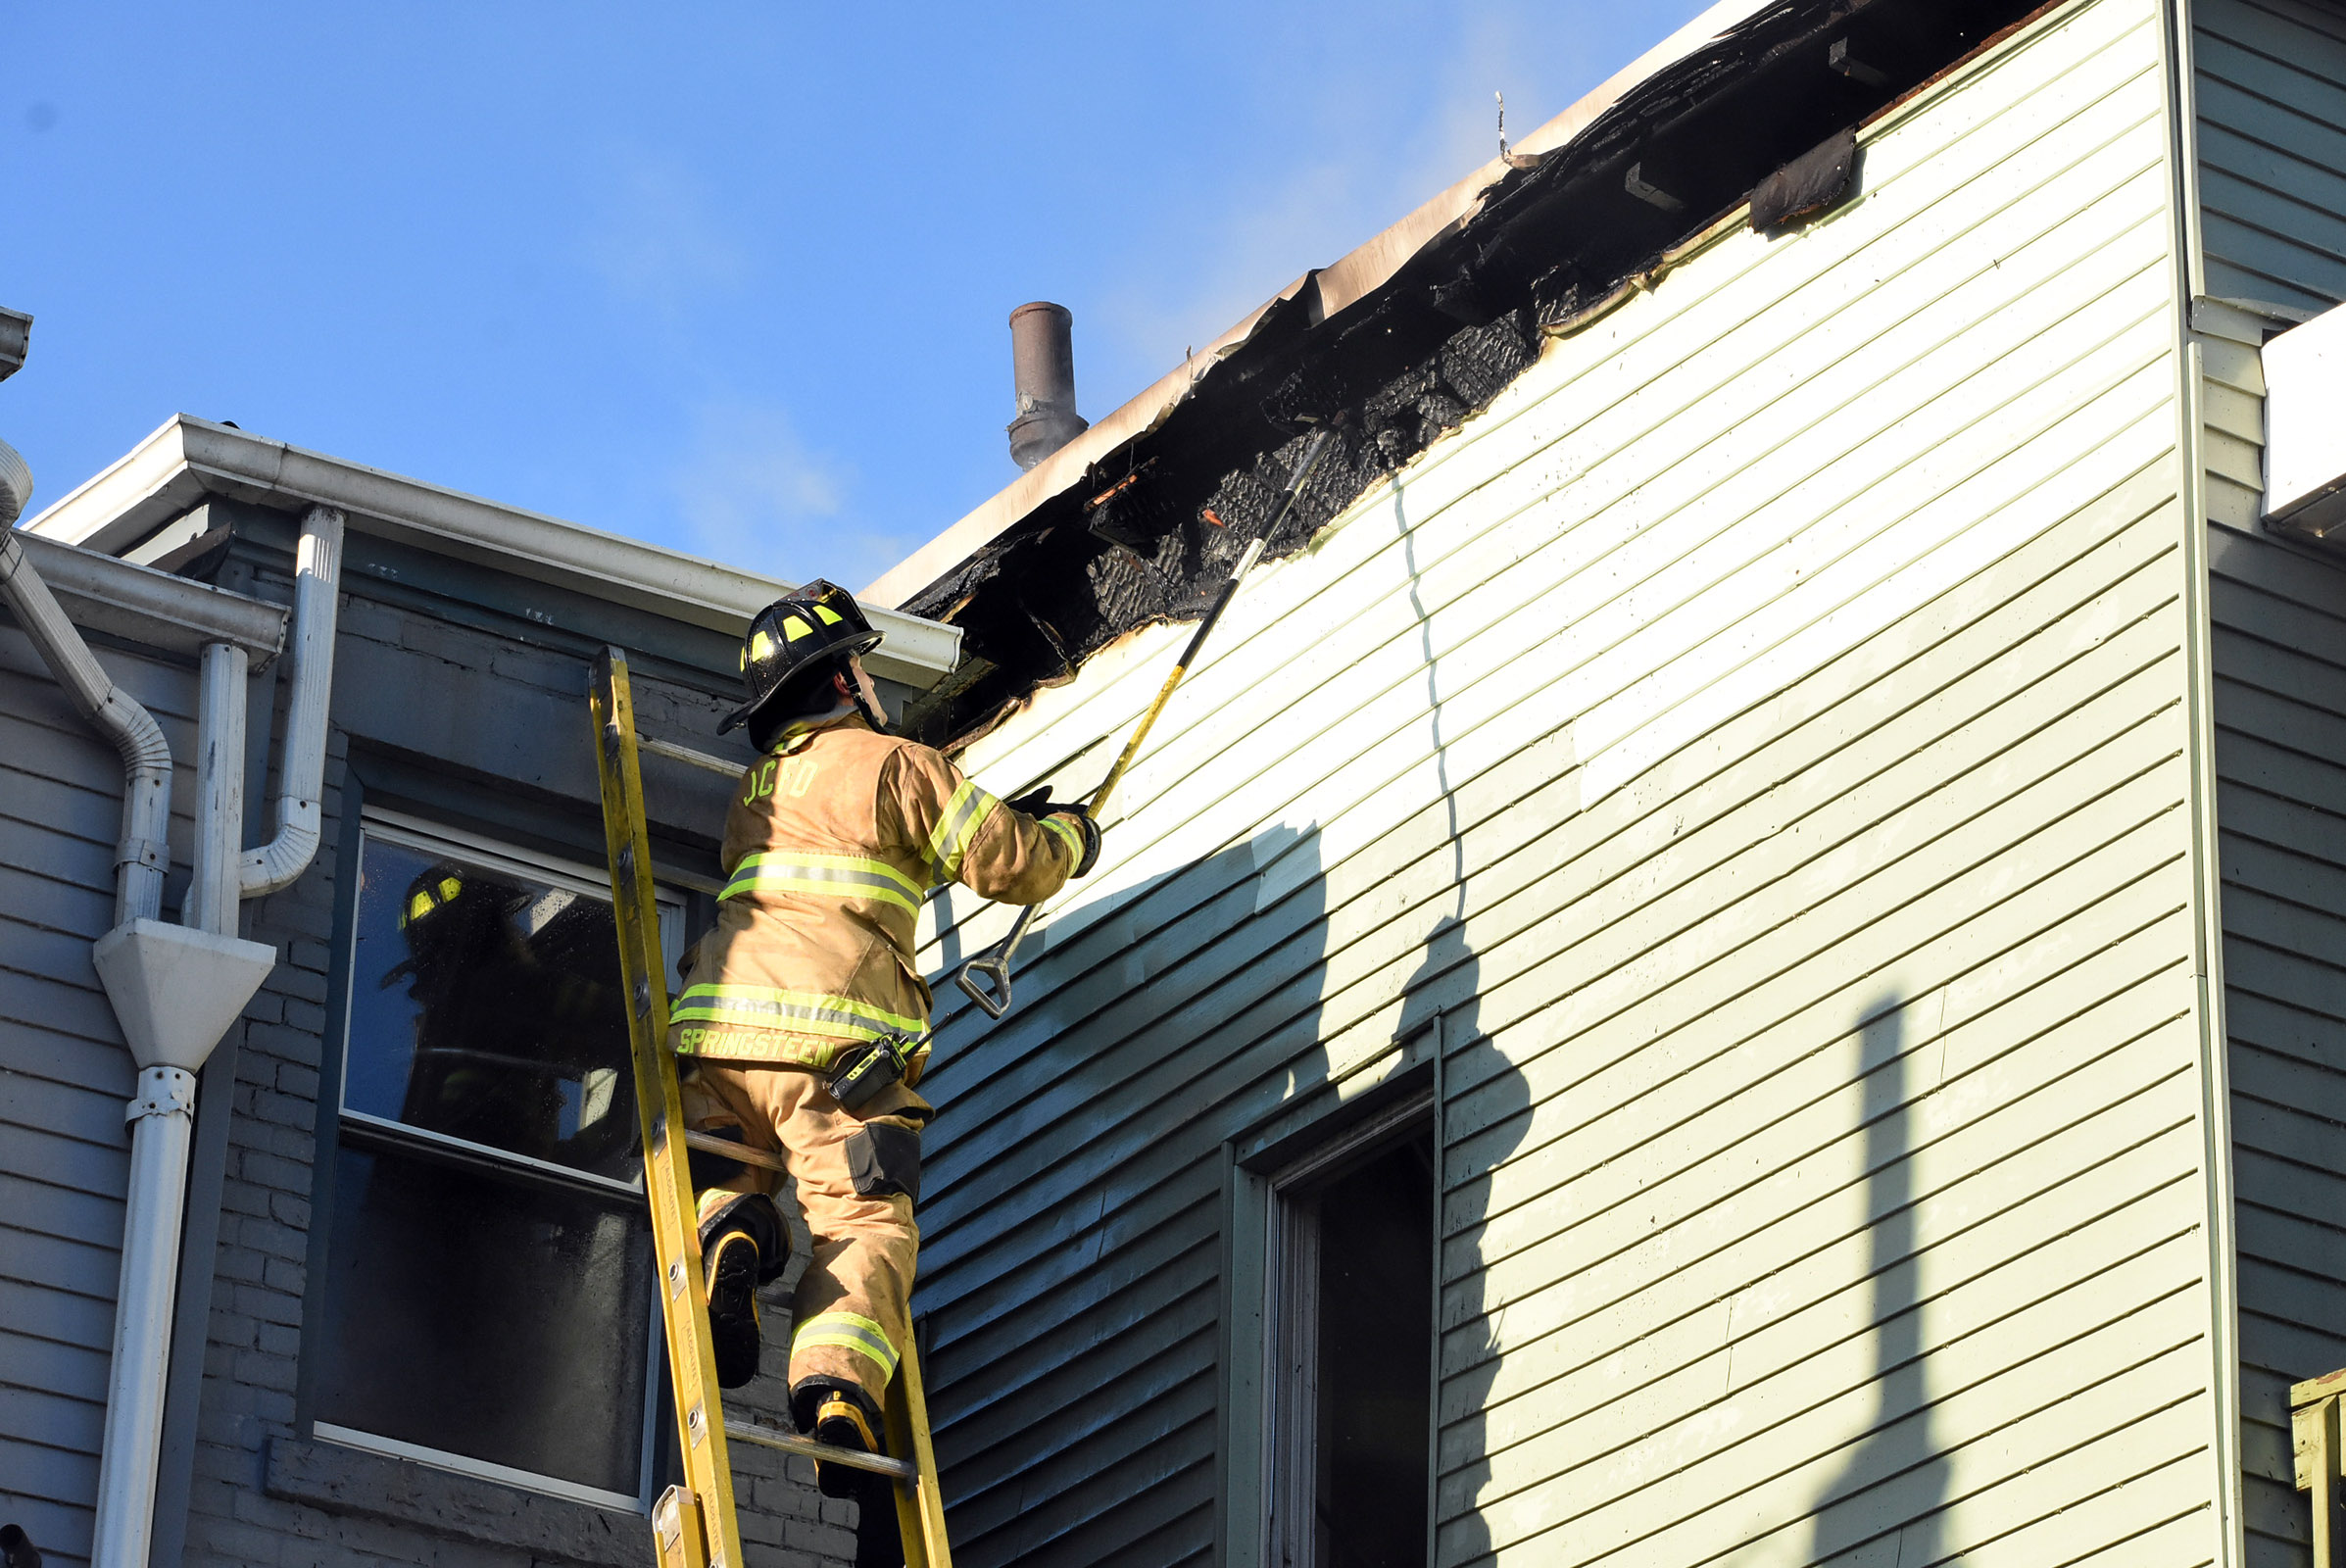 3-alarm blaze in Jersey City claims 2 multi-family homes; Springsteen's son among responders